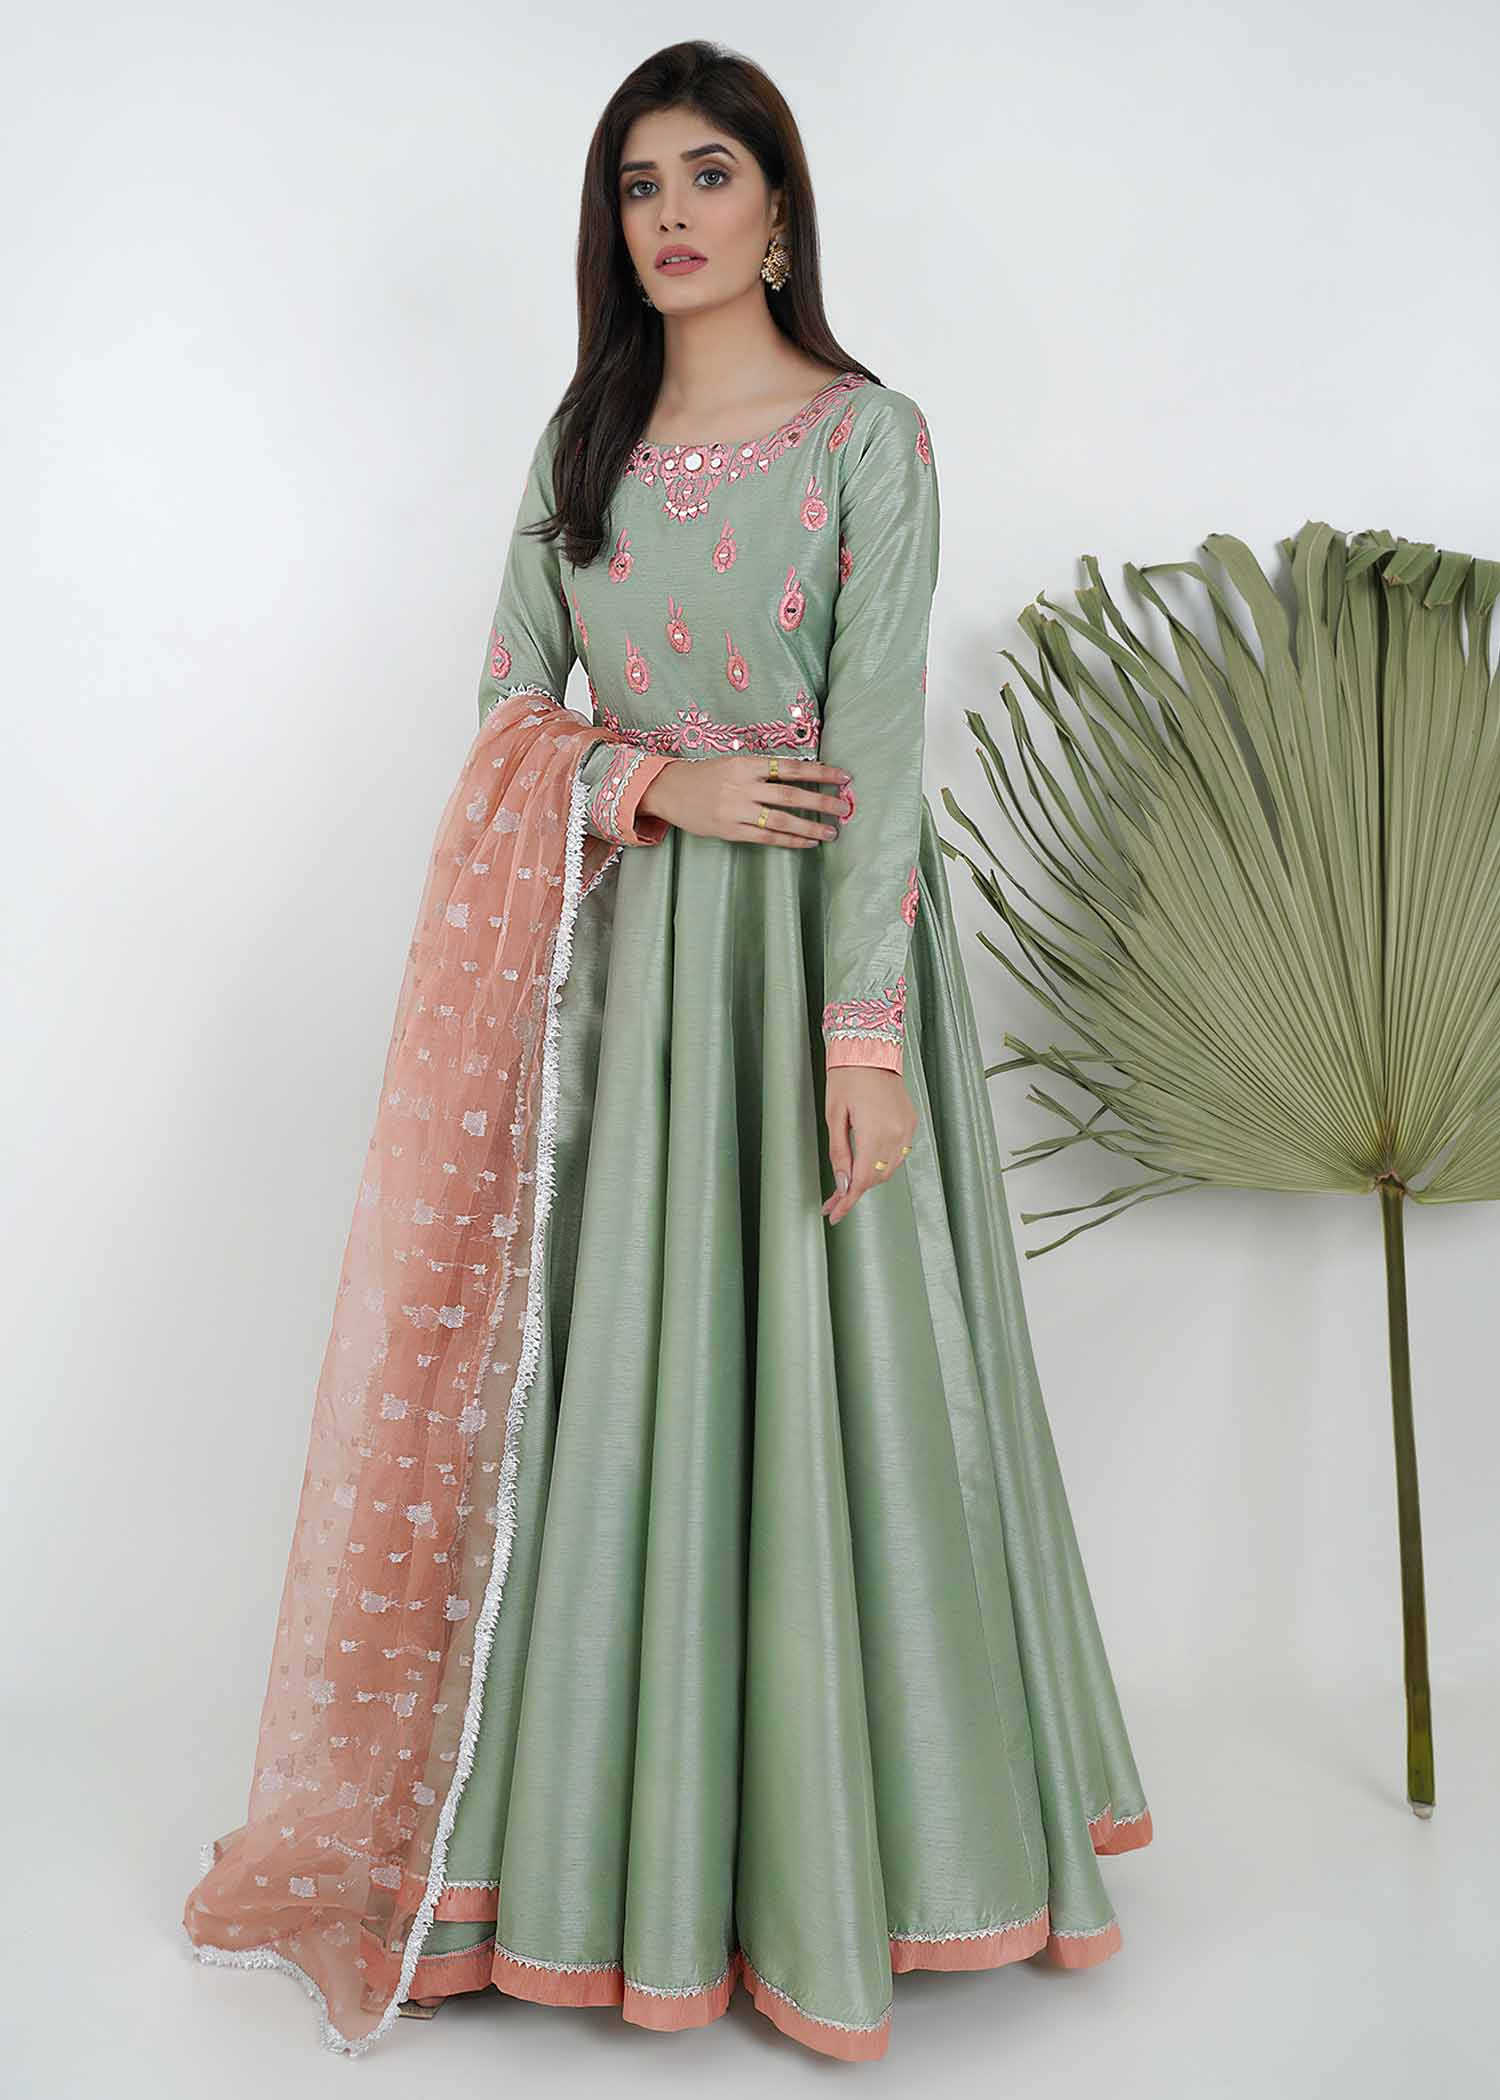 Mint green peshwas